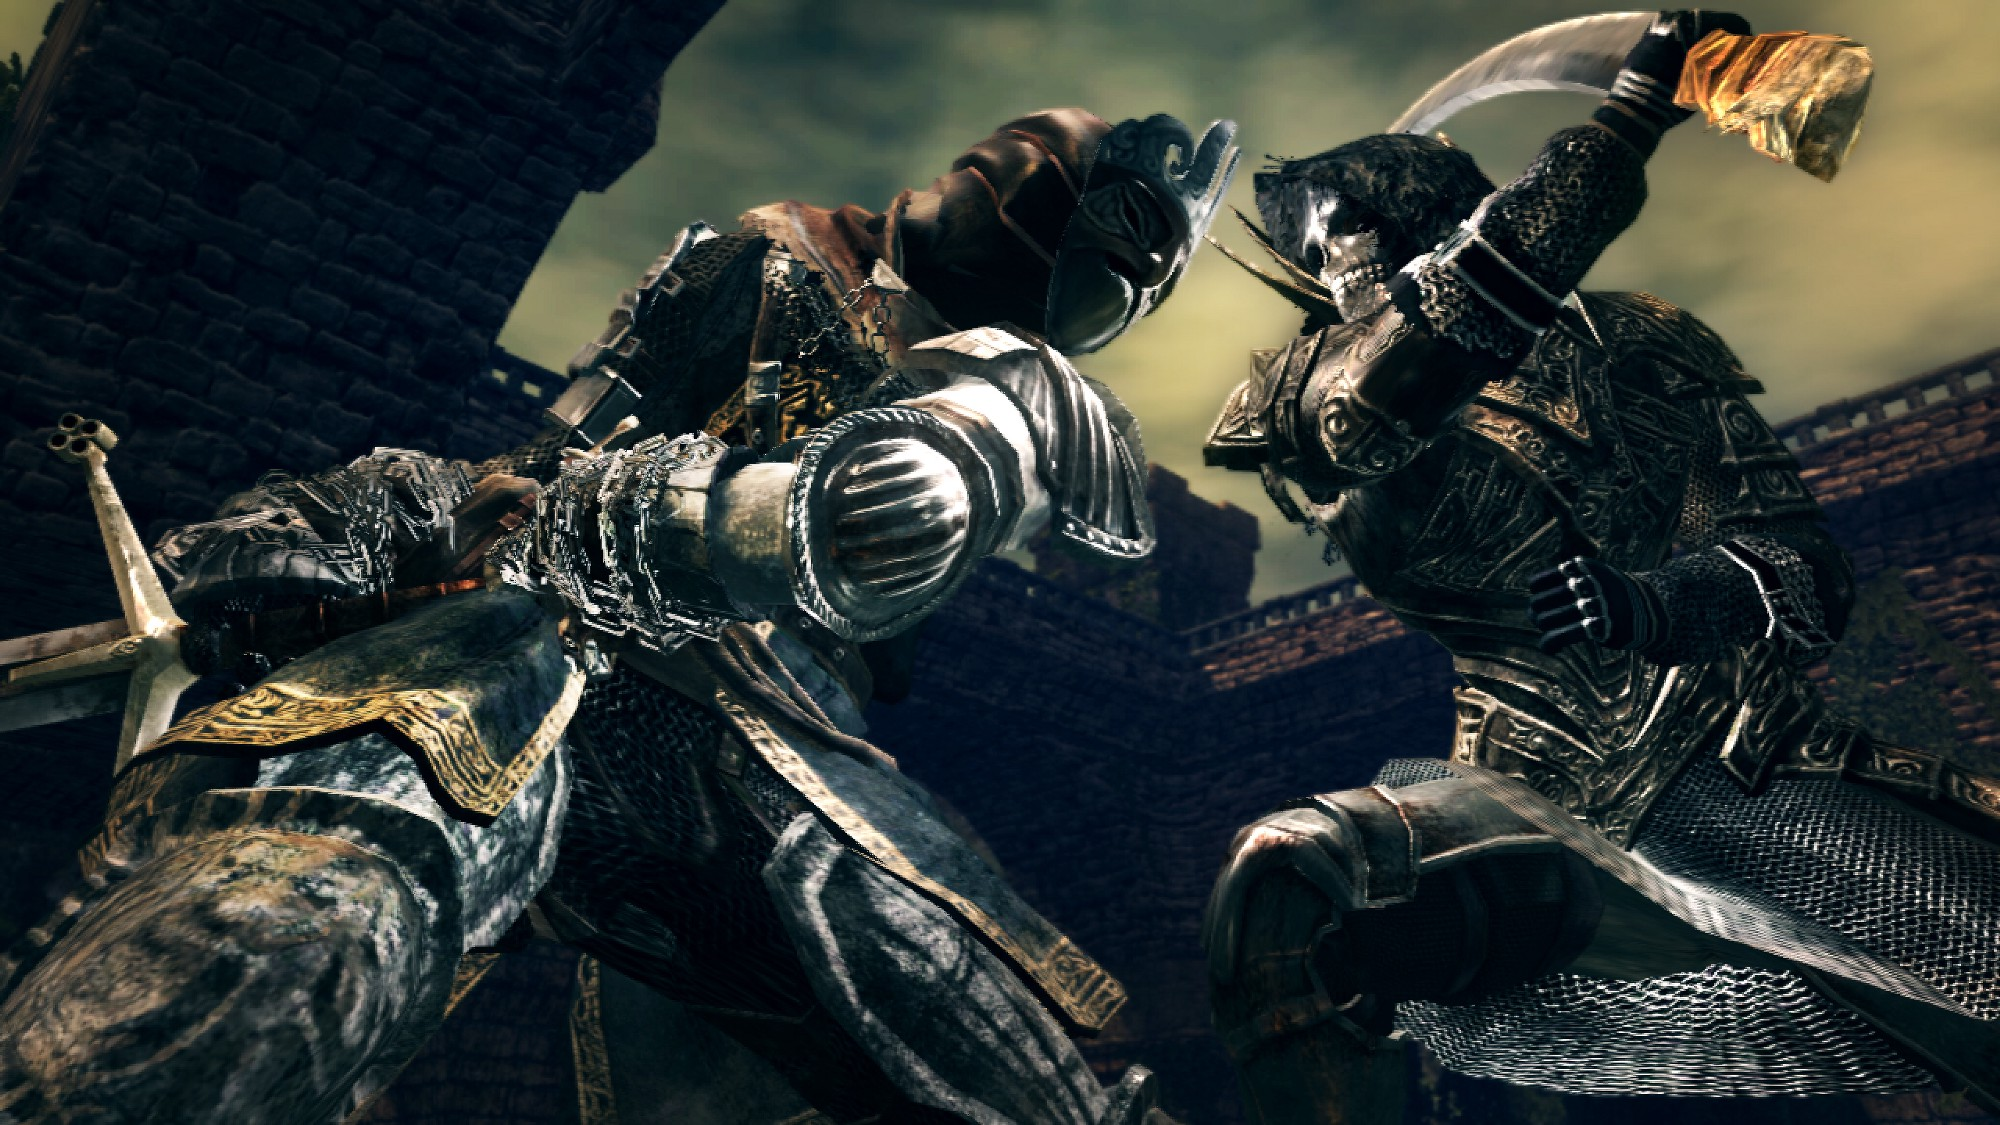 A sword-wielding knight and a knife-wielding skull-faced man face off outdoors in a courtyard under a yellow and blue sky.